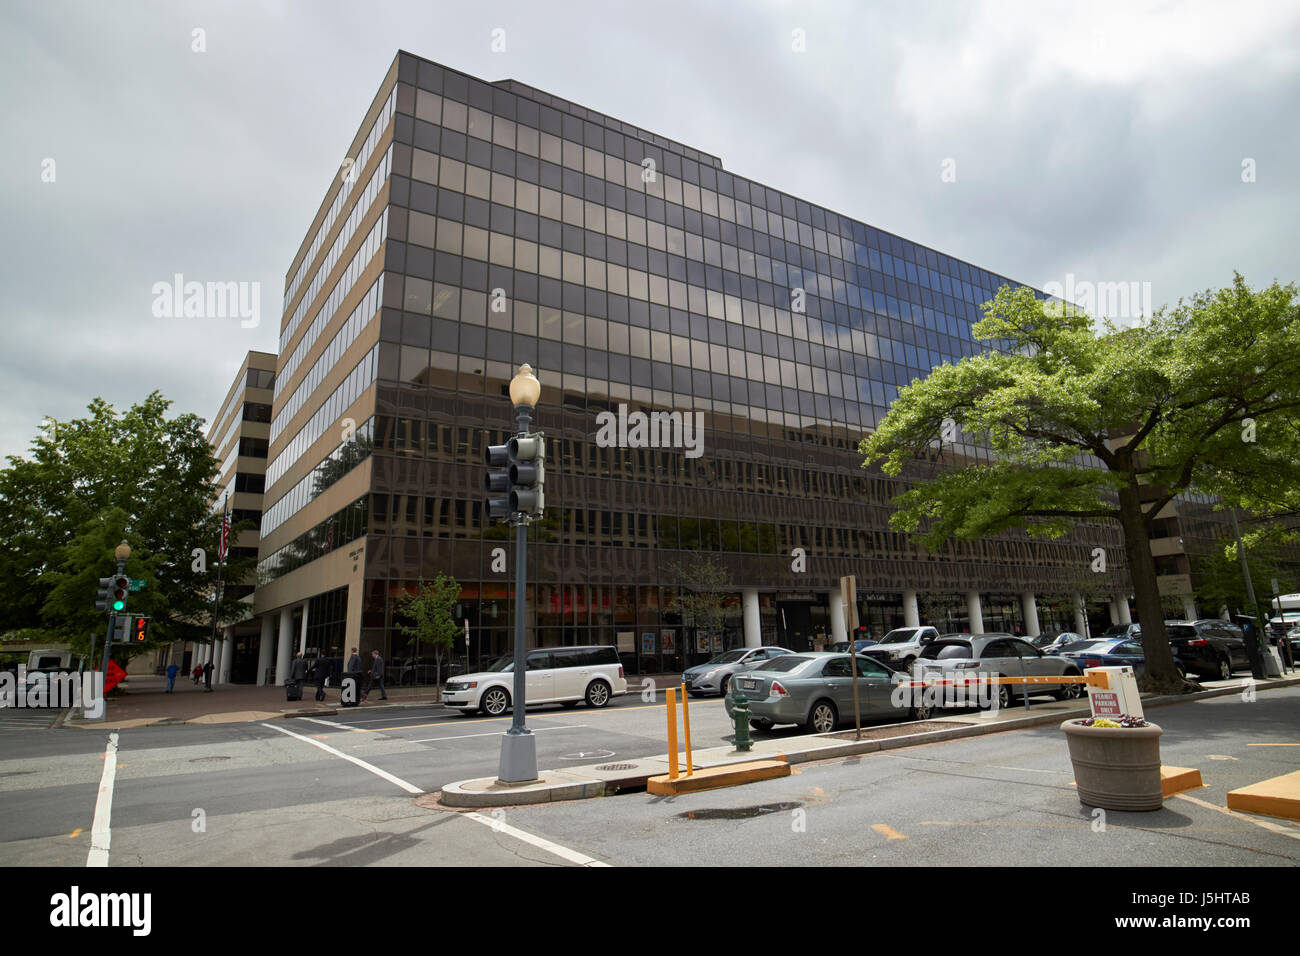 federal plaza government office buildings including state department annex and fema headquarters Washington DC USA - Stock Image